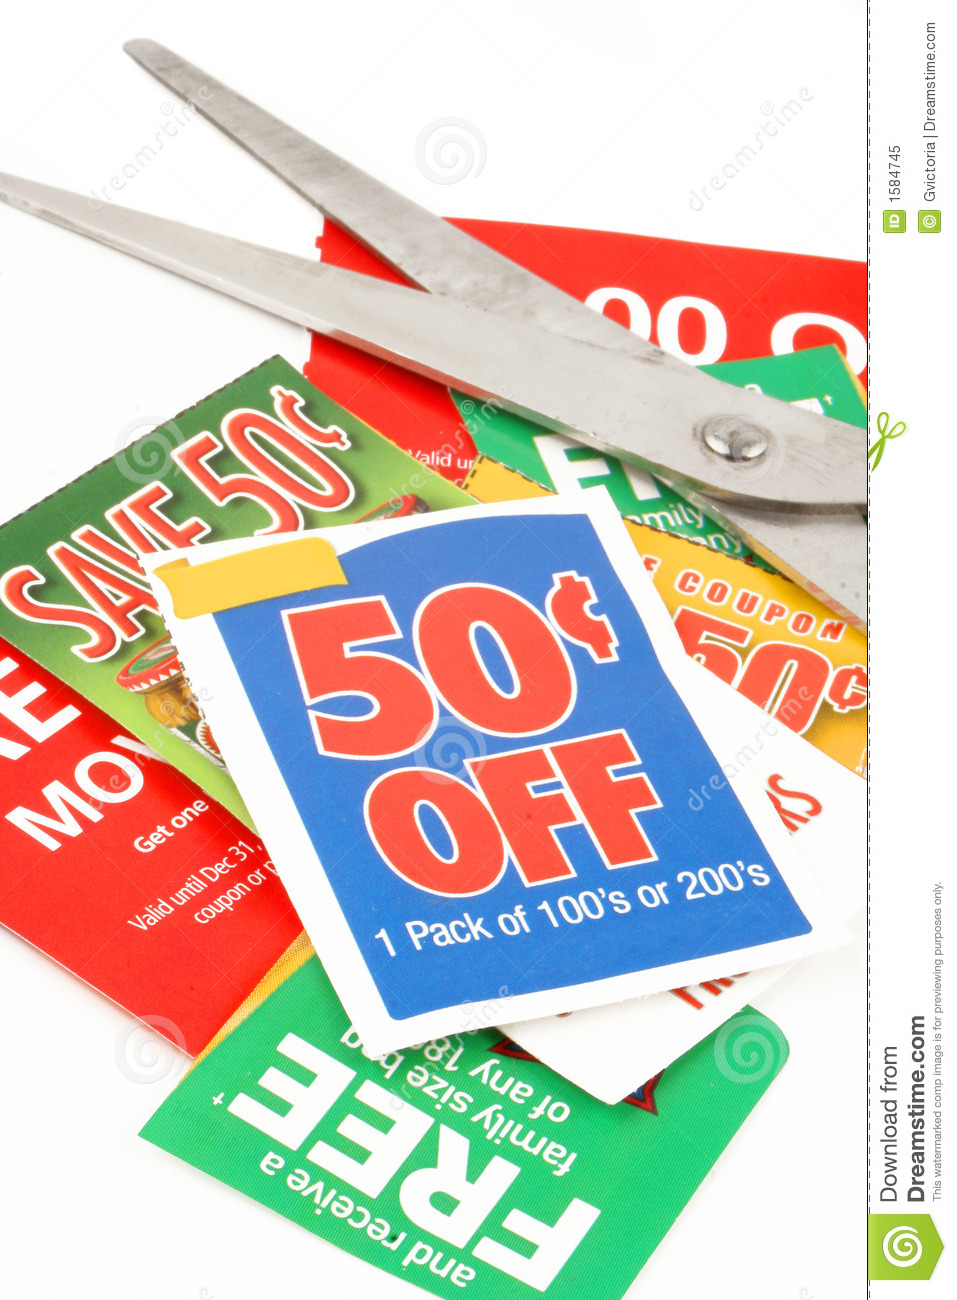 clipping coupons stock image image of store food